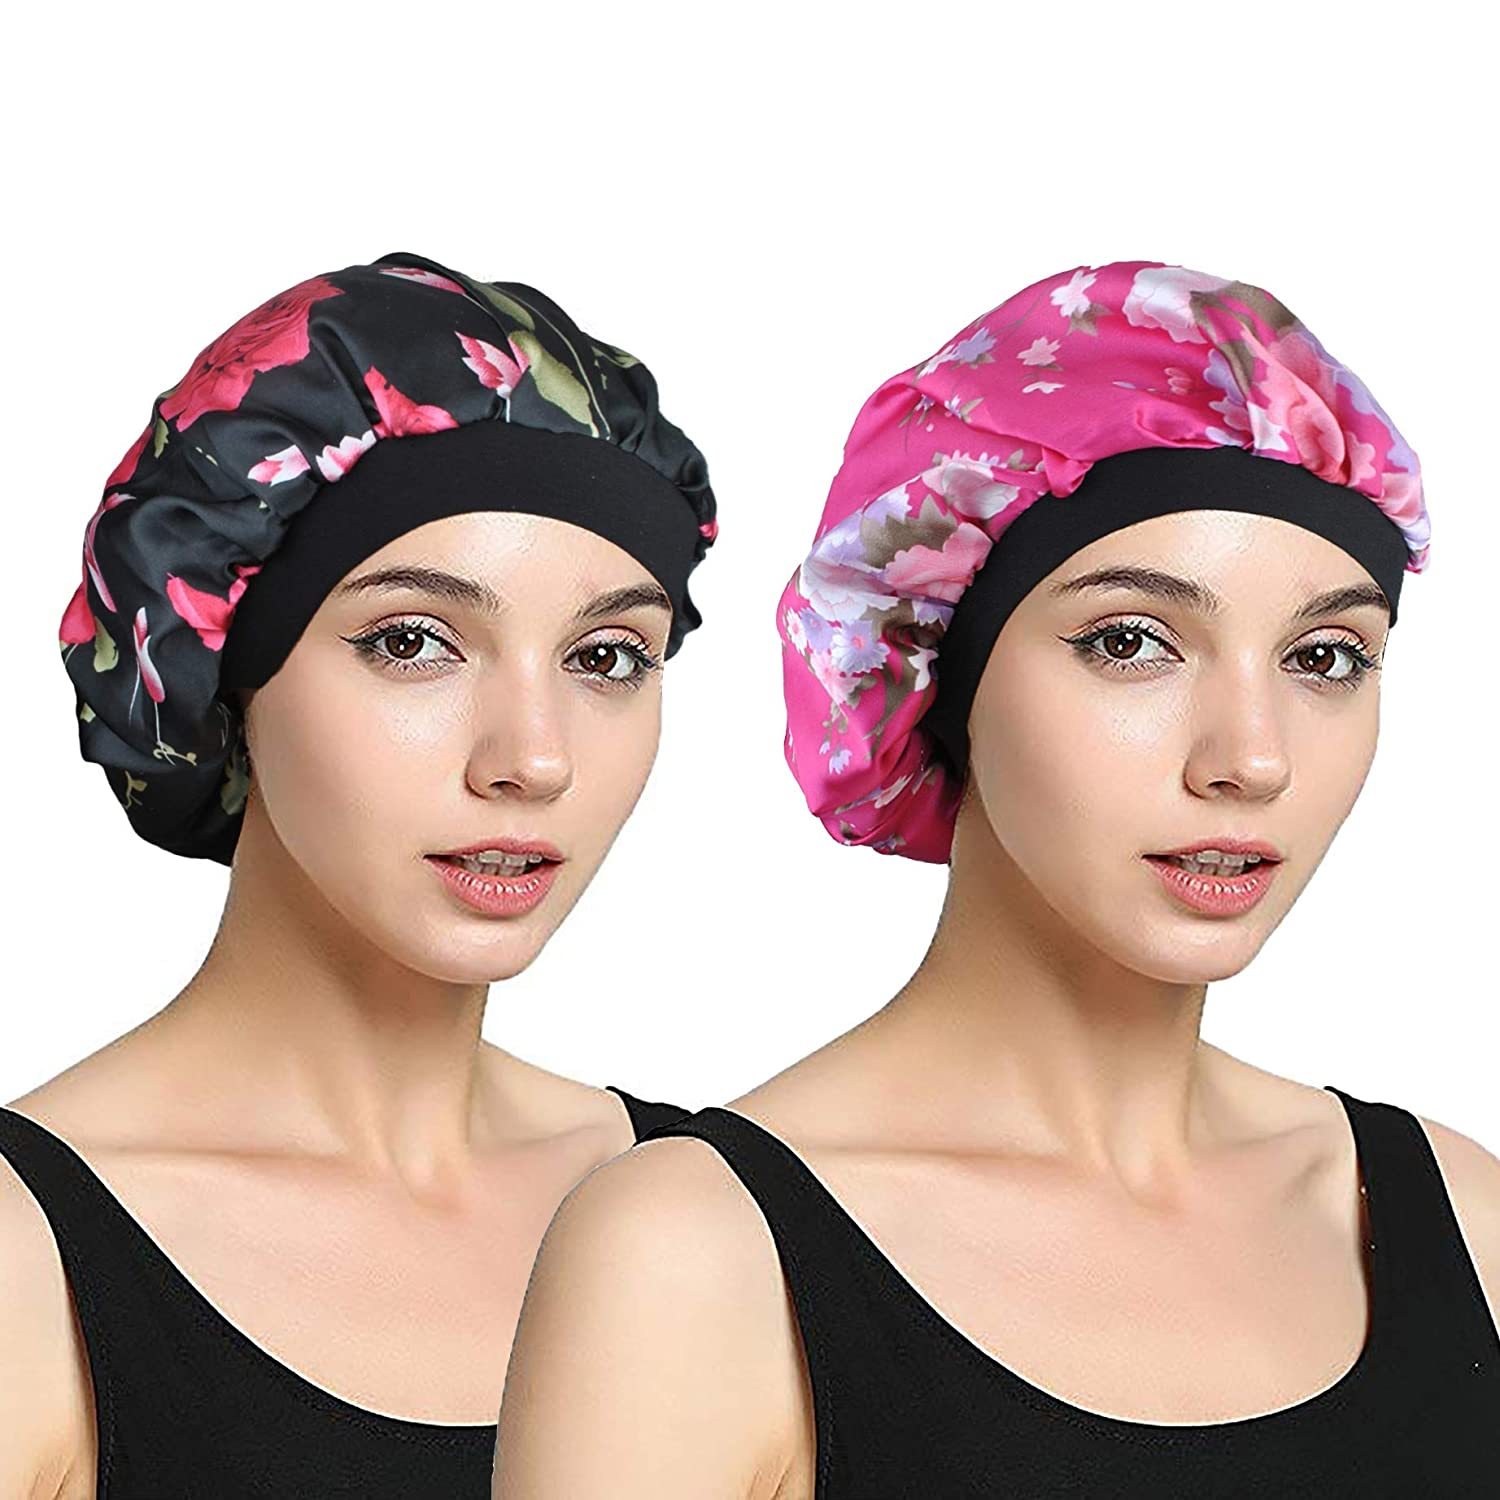 EINSKEY Sleep Cap for Women Satin Night Cap for Hair Protection - 2 Pack